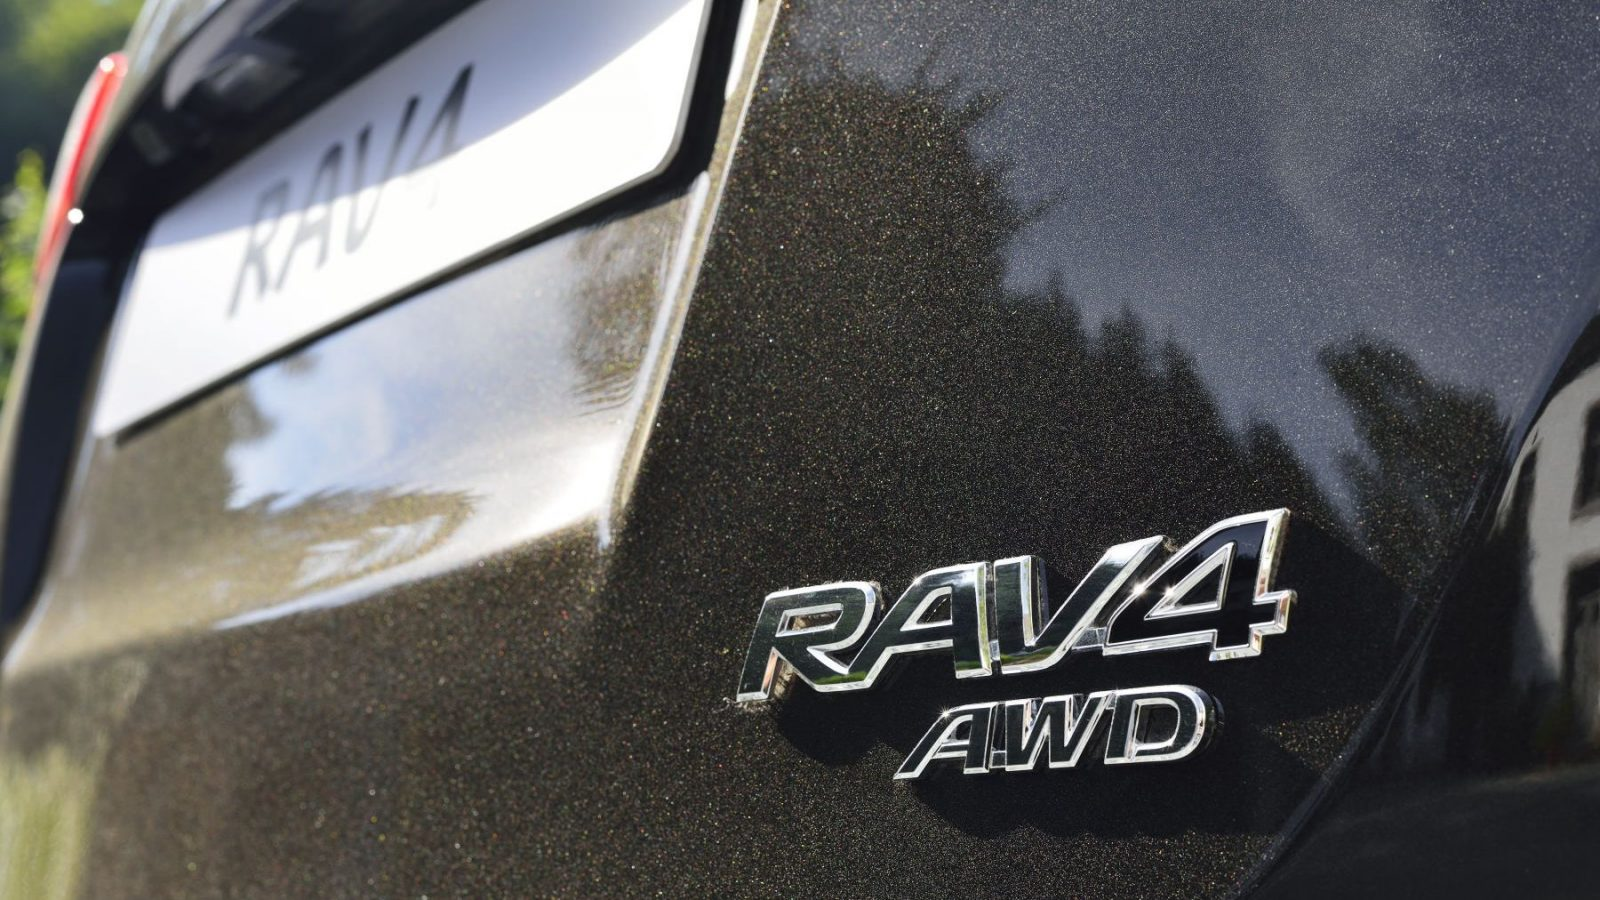 2014 Toyota RAV4 all-wheel drive badge